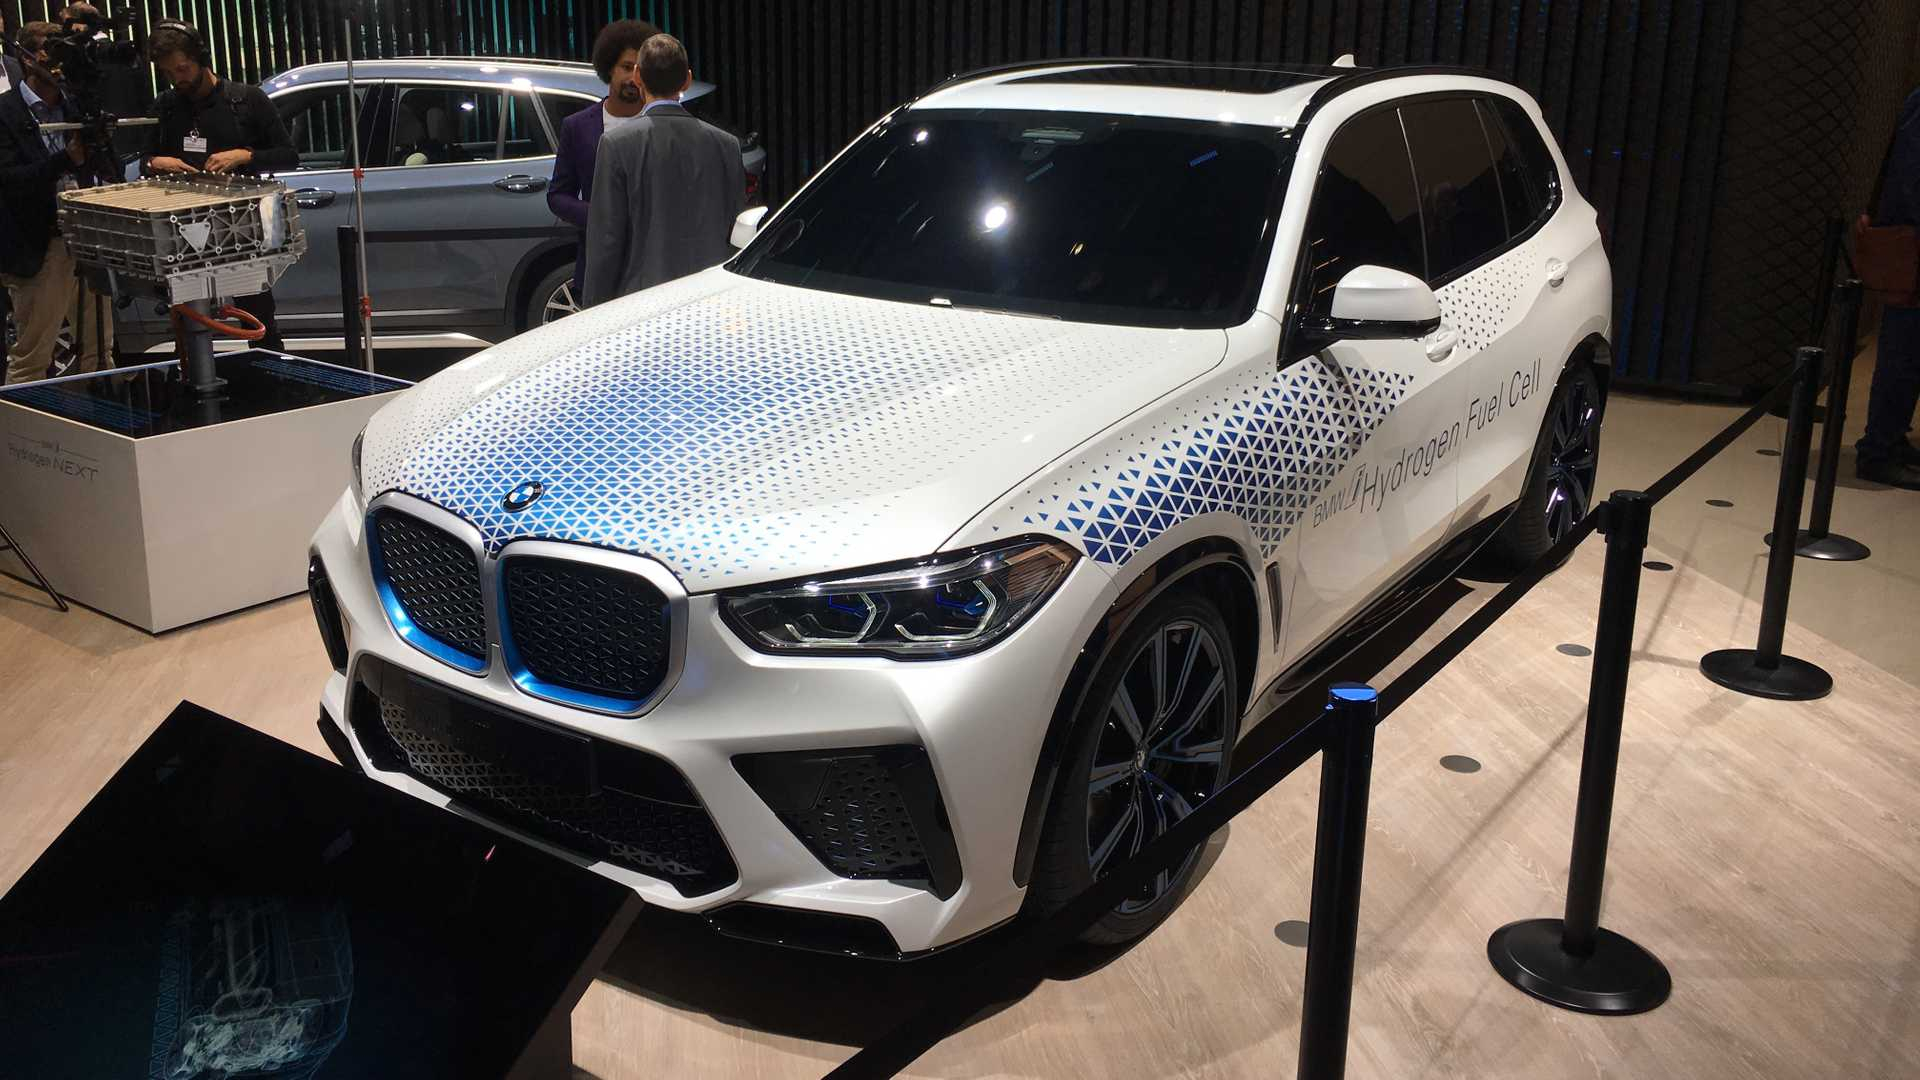 2022 Bmw X5 Hydrogen Version To Produce 369 Hp With Toyota's